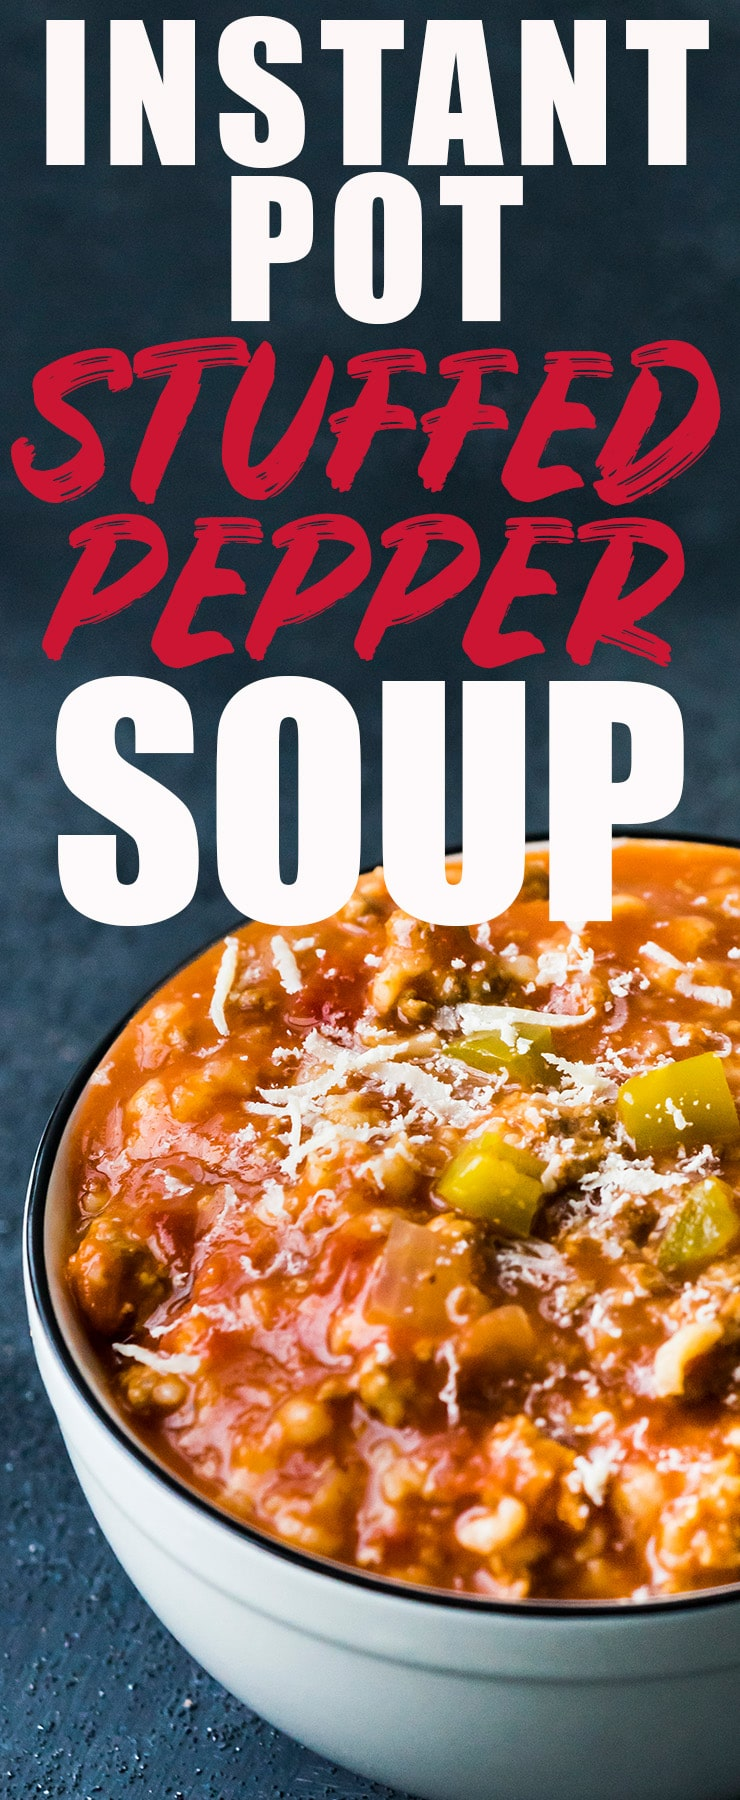 This Stuffed Bell Pepper Soup uses both ground beef and turkey and is made super easy with the help of the Instant Pot! The addition of just a little bit of rice makes this an awesome low carb recipe, too!